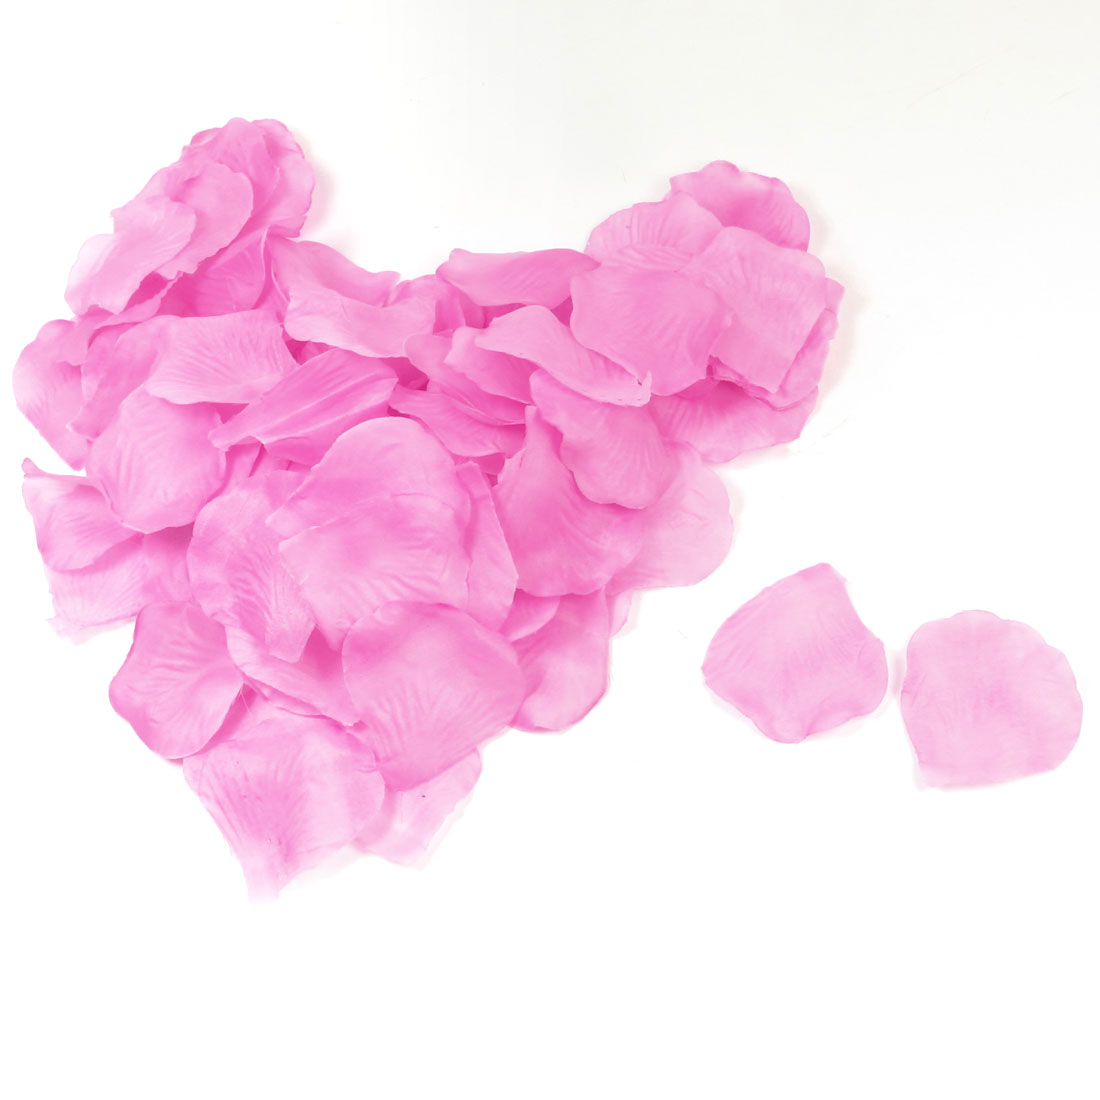 100 Pcs Wedding Bedroom Party Decor Artificial Fabric Rose Flower Petals Pinkish